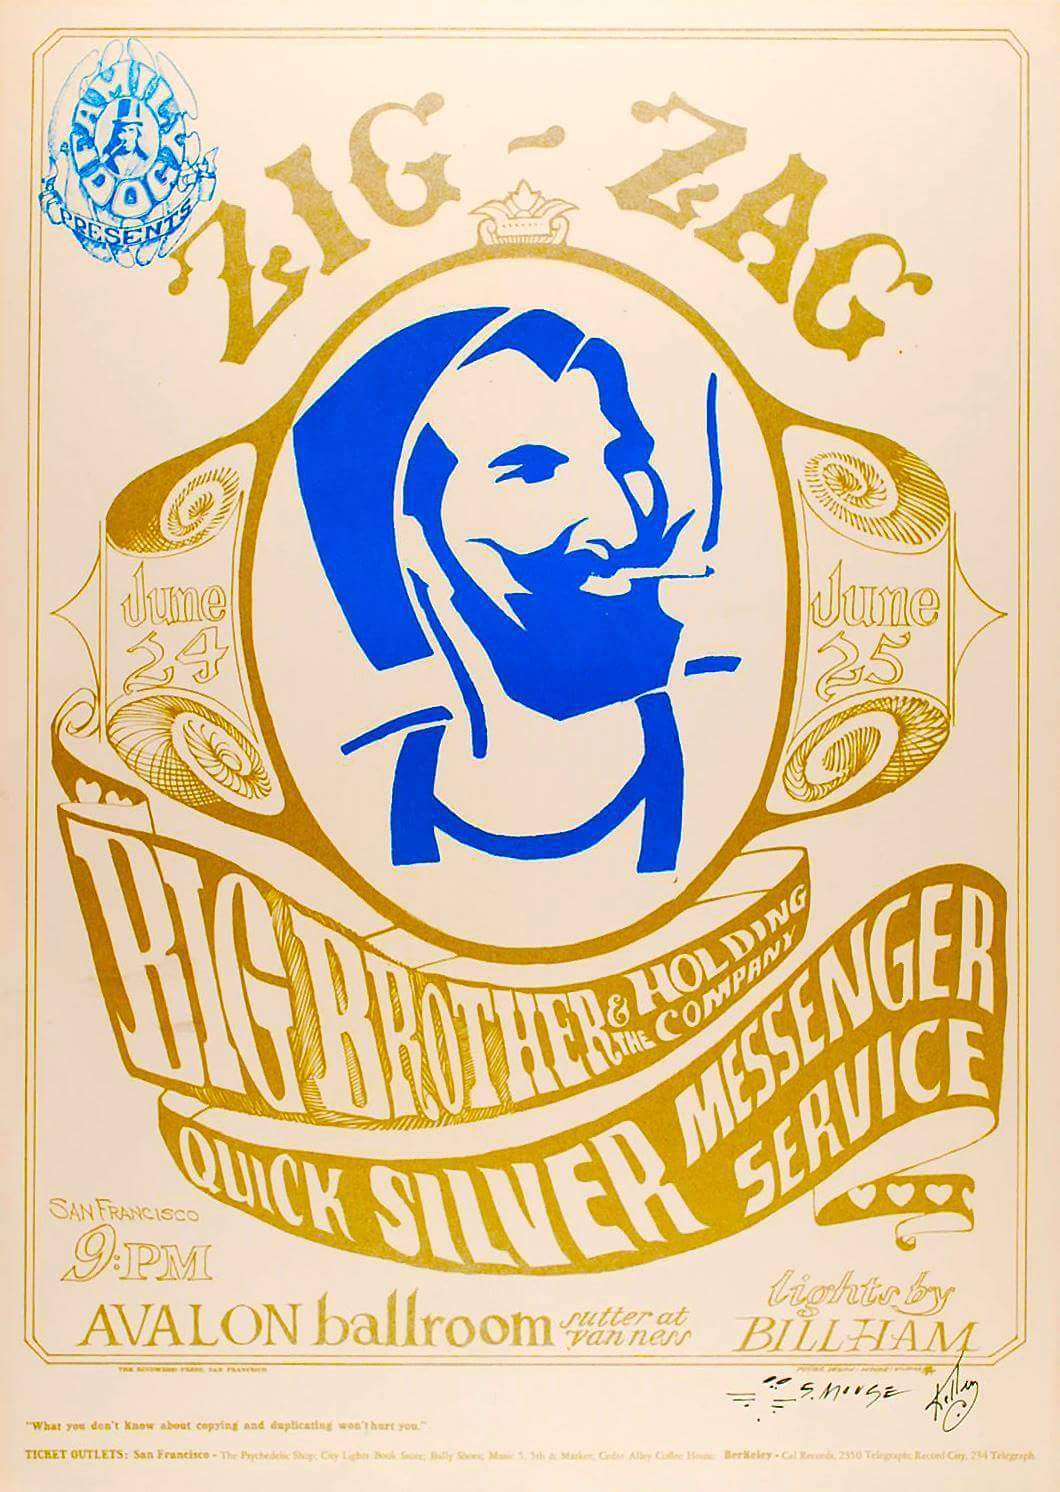 POSTER FROM THE PAST: Zig-Zag Man, Big Brother and the Holding Company, Quicksilver Messenger Service, June 24 & 25 1966, Avalon Ballroom